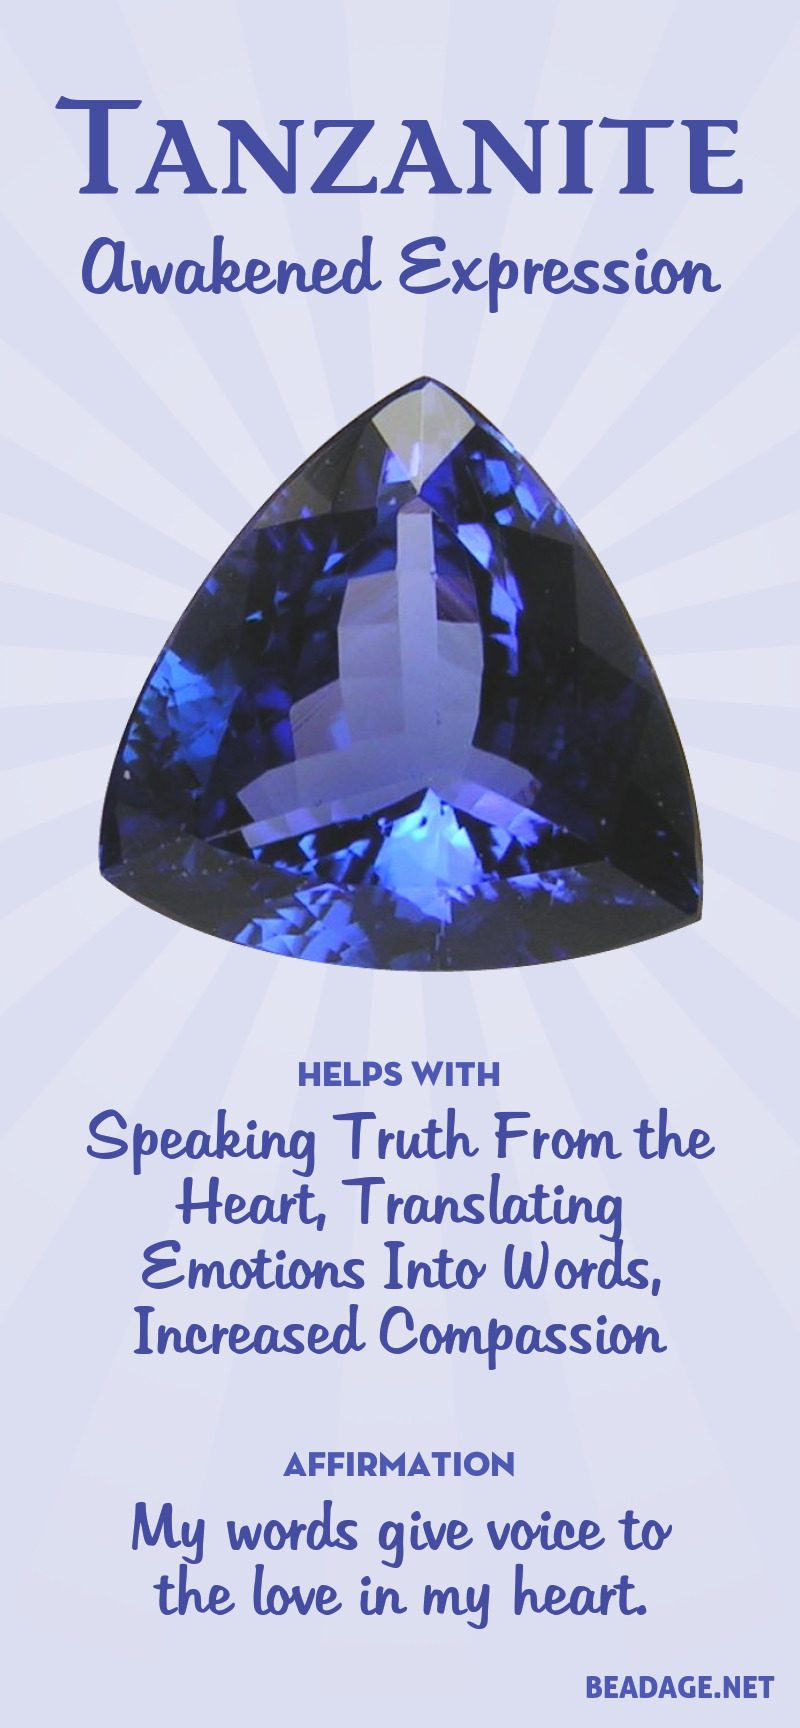 By harmonizing and linking the heart and third-eye chakra, Tanzanite is a powerful stone for activating compassion and increasing the ability to speak the truth in your heart. It is an integrating stone that helps awaken an enlightened consciousness based in wholeness. Learn more about Tanzanite meaning + healing properties, benefits & more. Visit to find gemstone meanings & info about crystal healing. #gemstones #crystals #crystalhealing #beadage